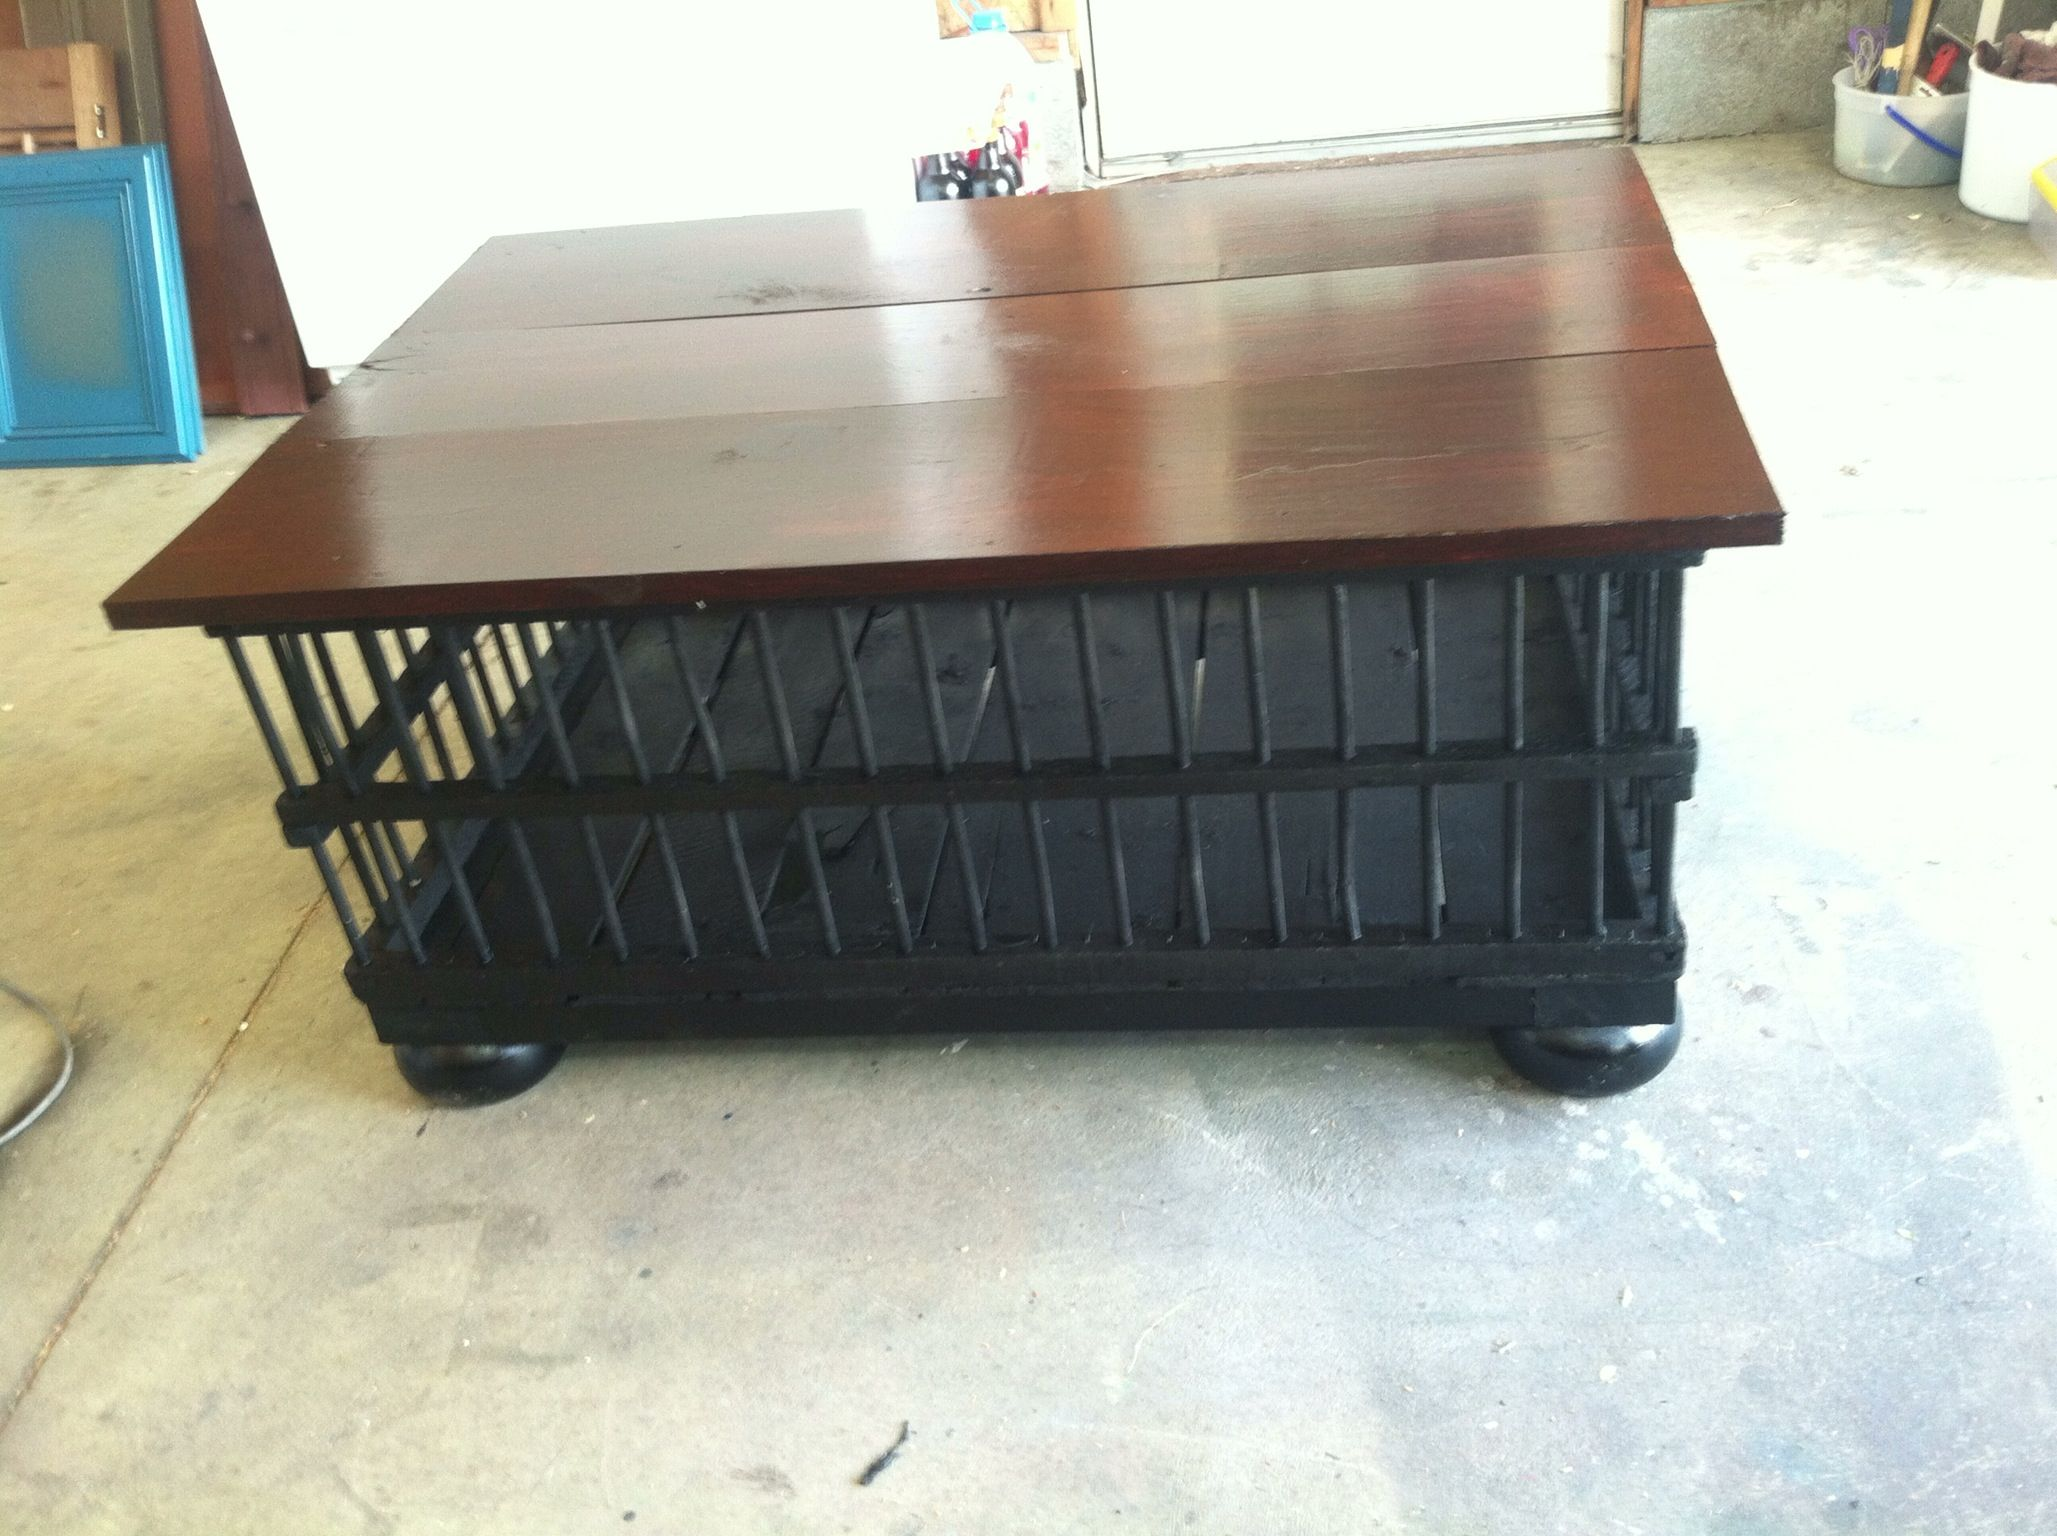 Coffee Table Out Of An Old Chicken Crate My Finished Projects Pinterest Chicken Buns And